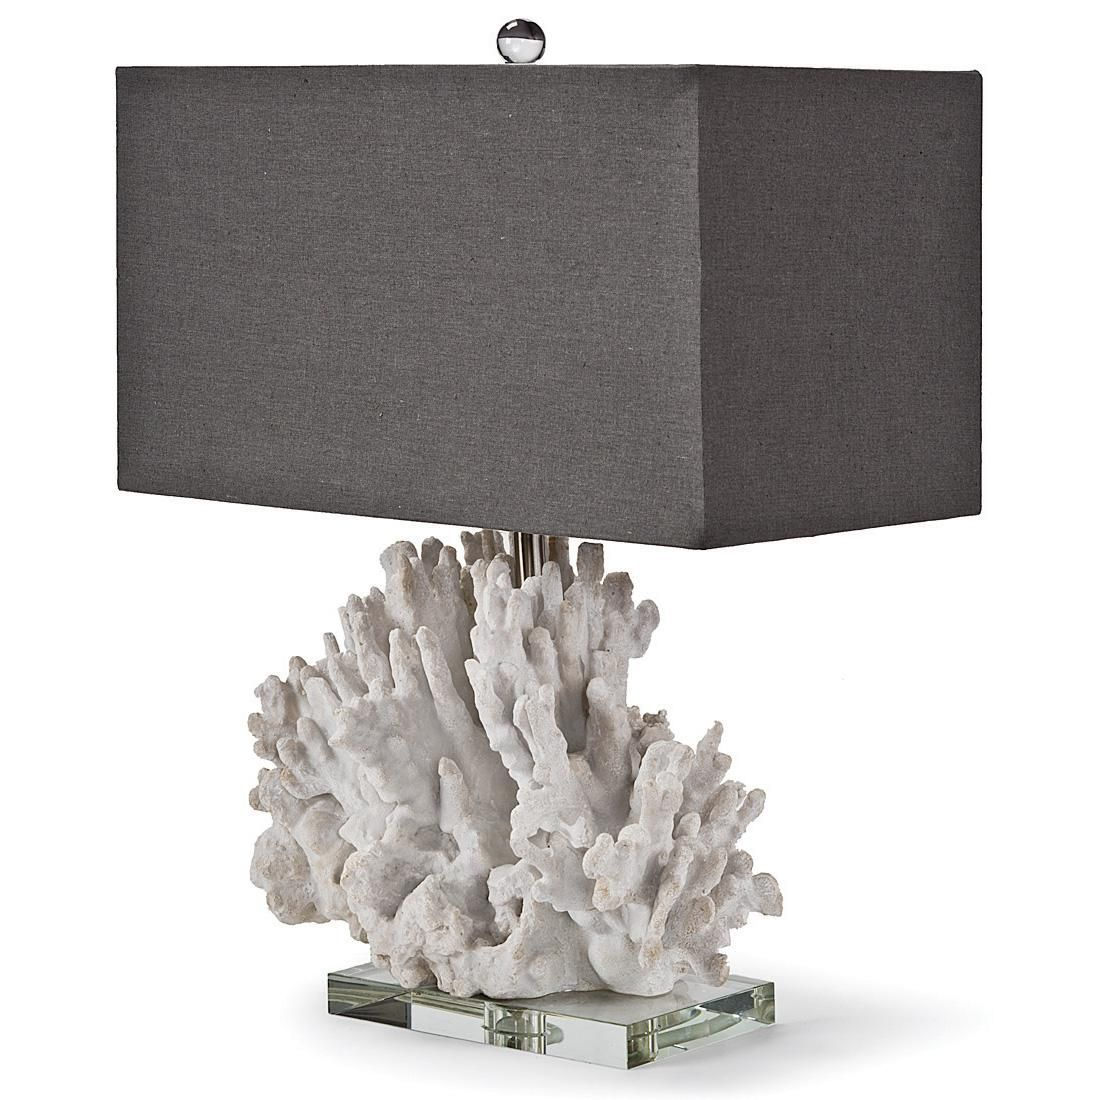 Monterey Coastal Beach Charcoal White Coral Table Lamp   Beach Style   Table  Lamps   Kathy Kuo Home